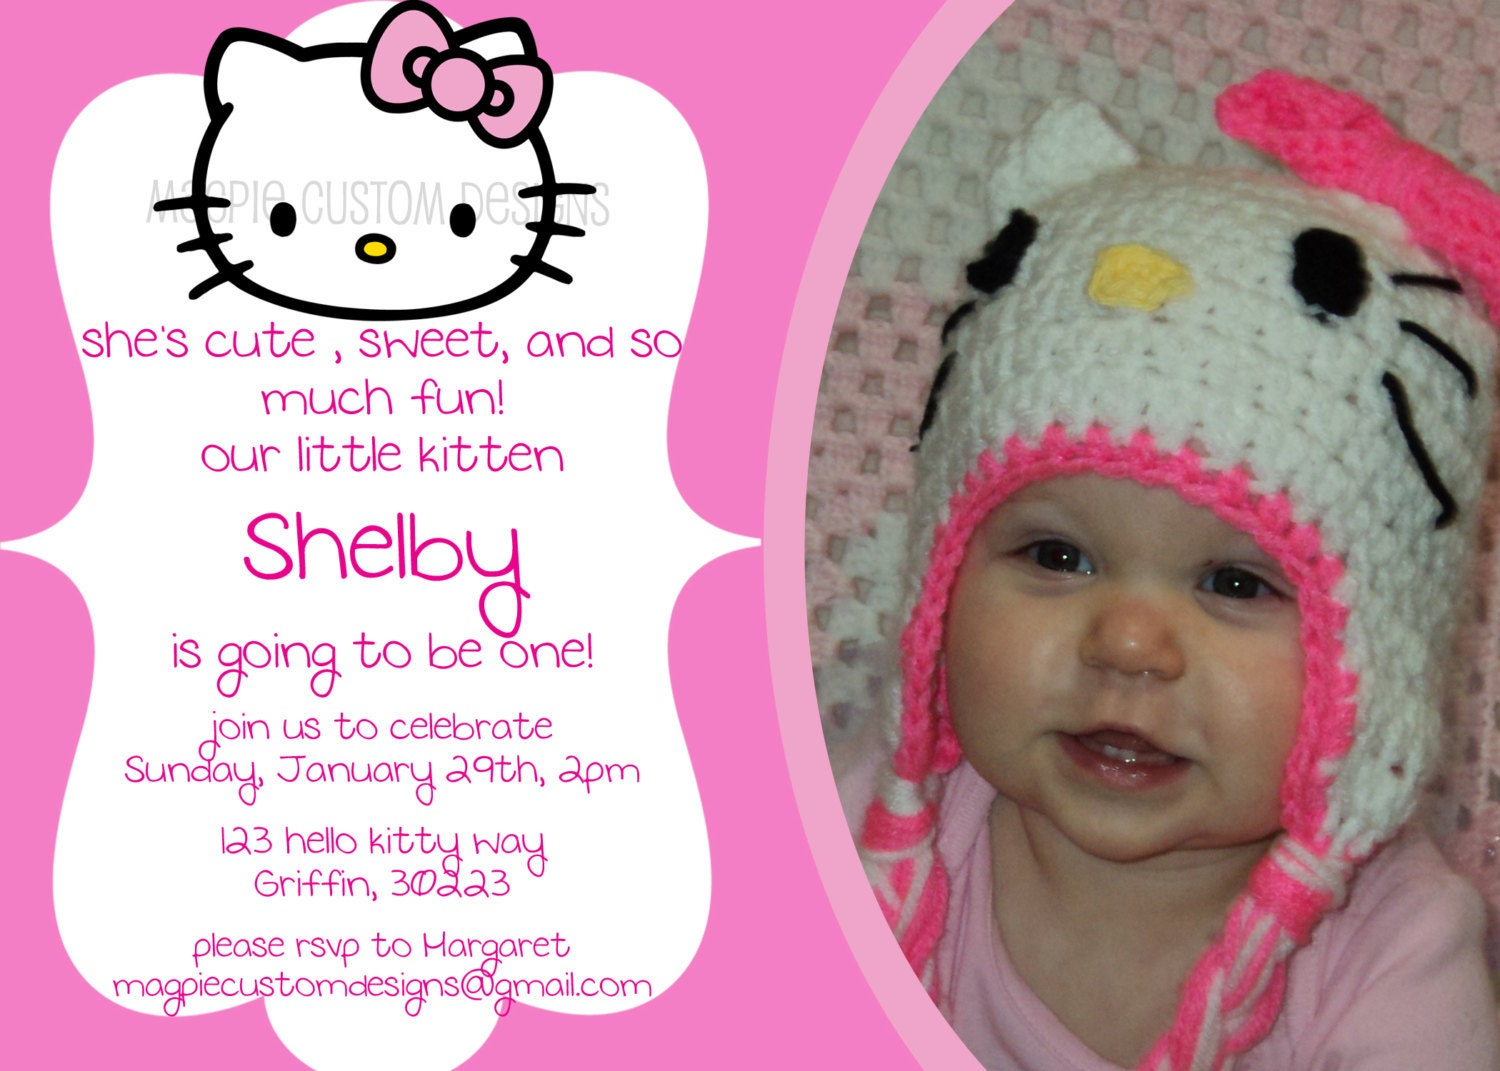 printable personalized hello kitty birthday invitation printable personalized hello kitty birthday invitation 128270zoom